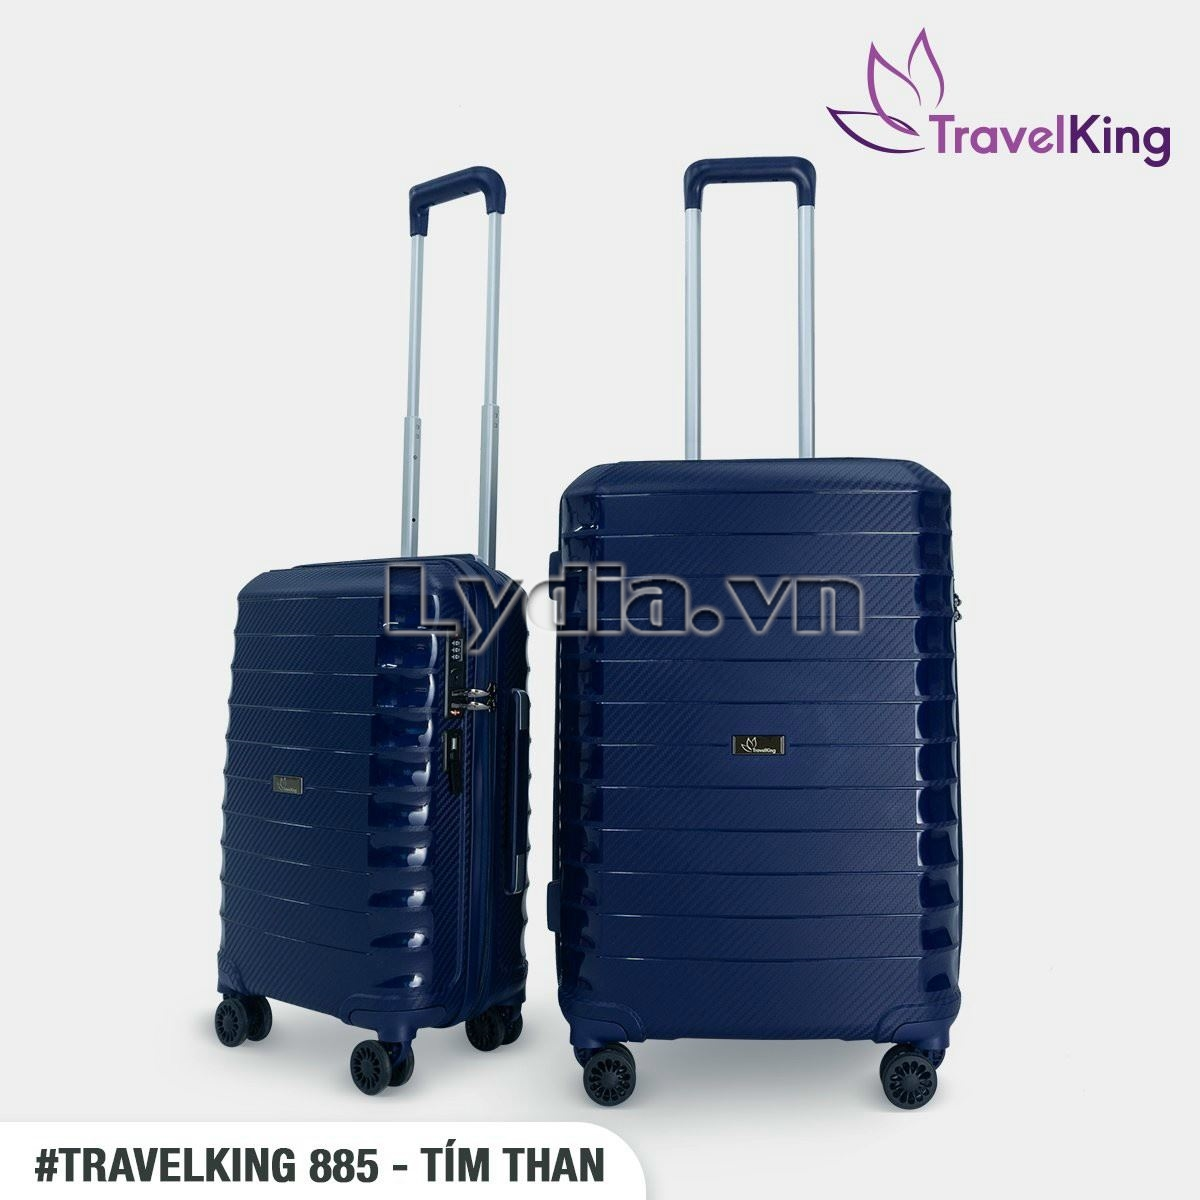 XẢ KHO TRAVELKING 885 SIZE 24 XANH THAN SALE 45%